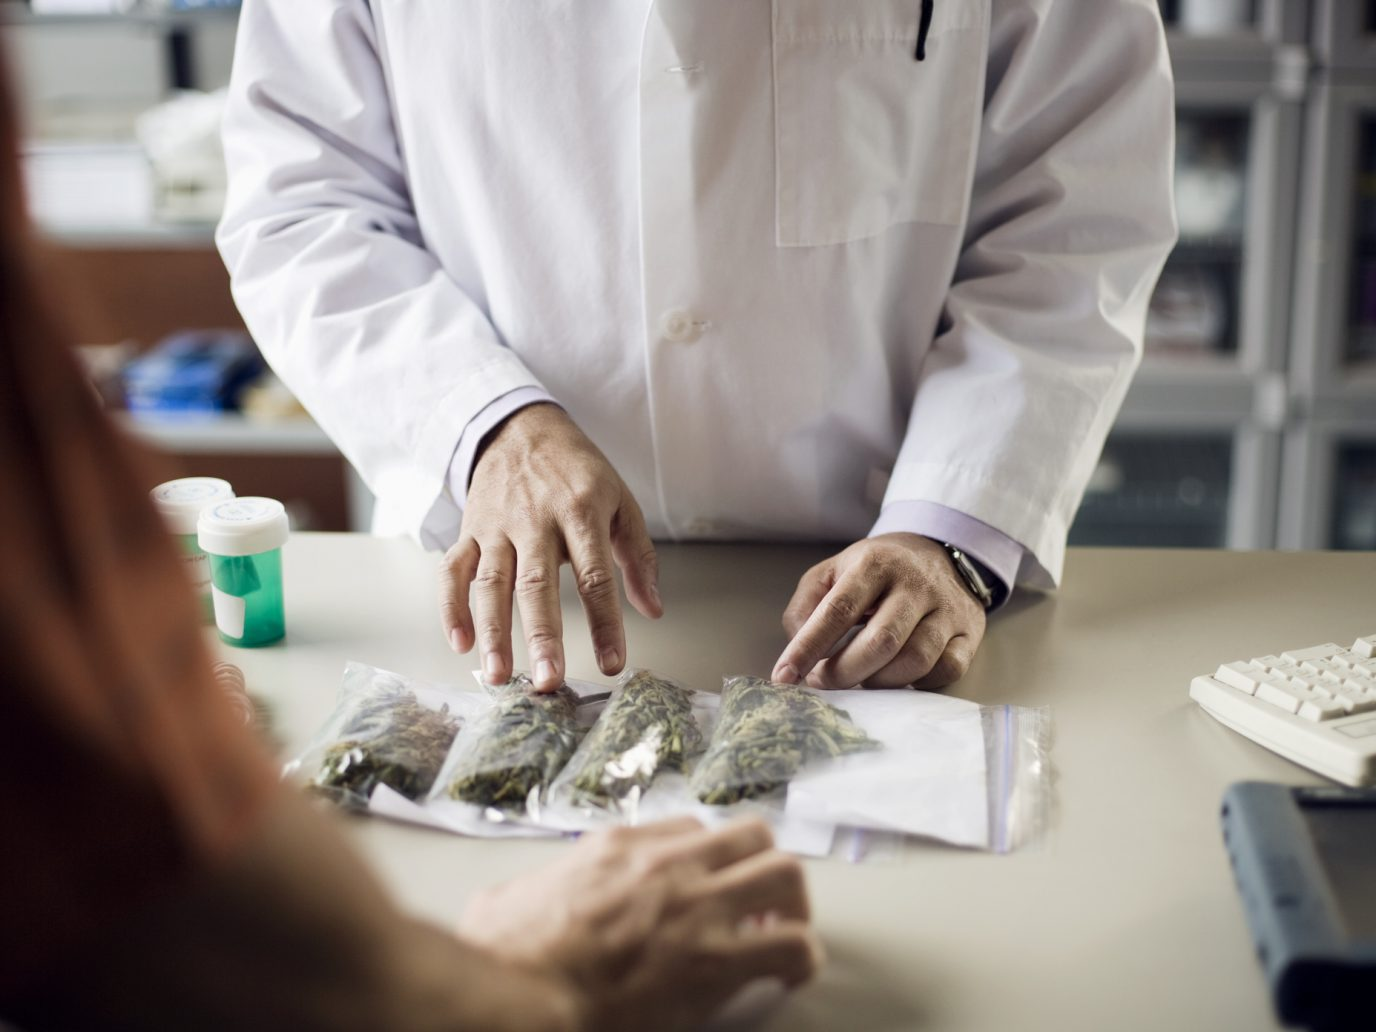 An international task force recently suggested new guidelines for using cannabis for chronic pain management.